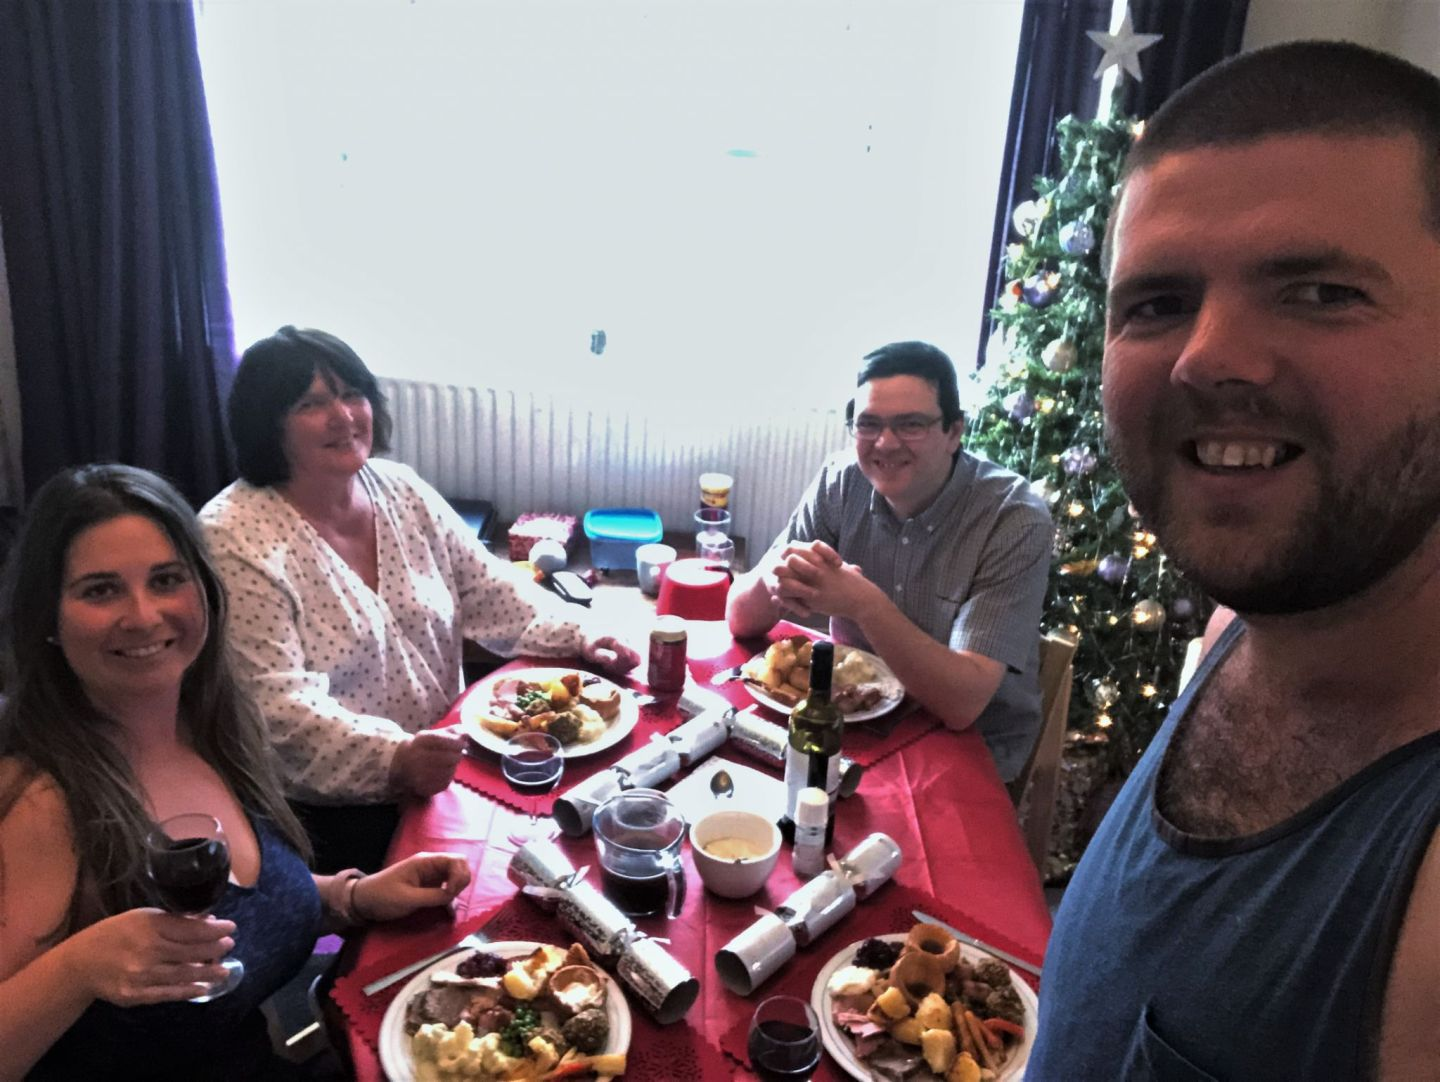 Christmas lunch with family